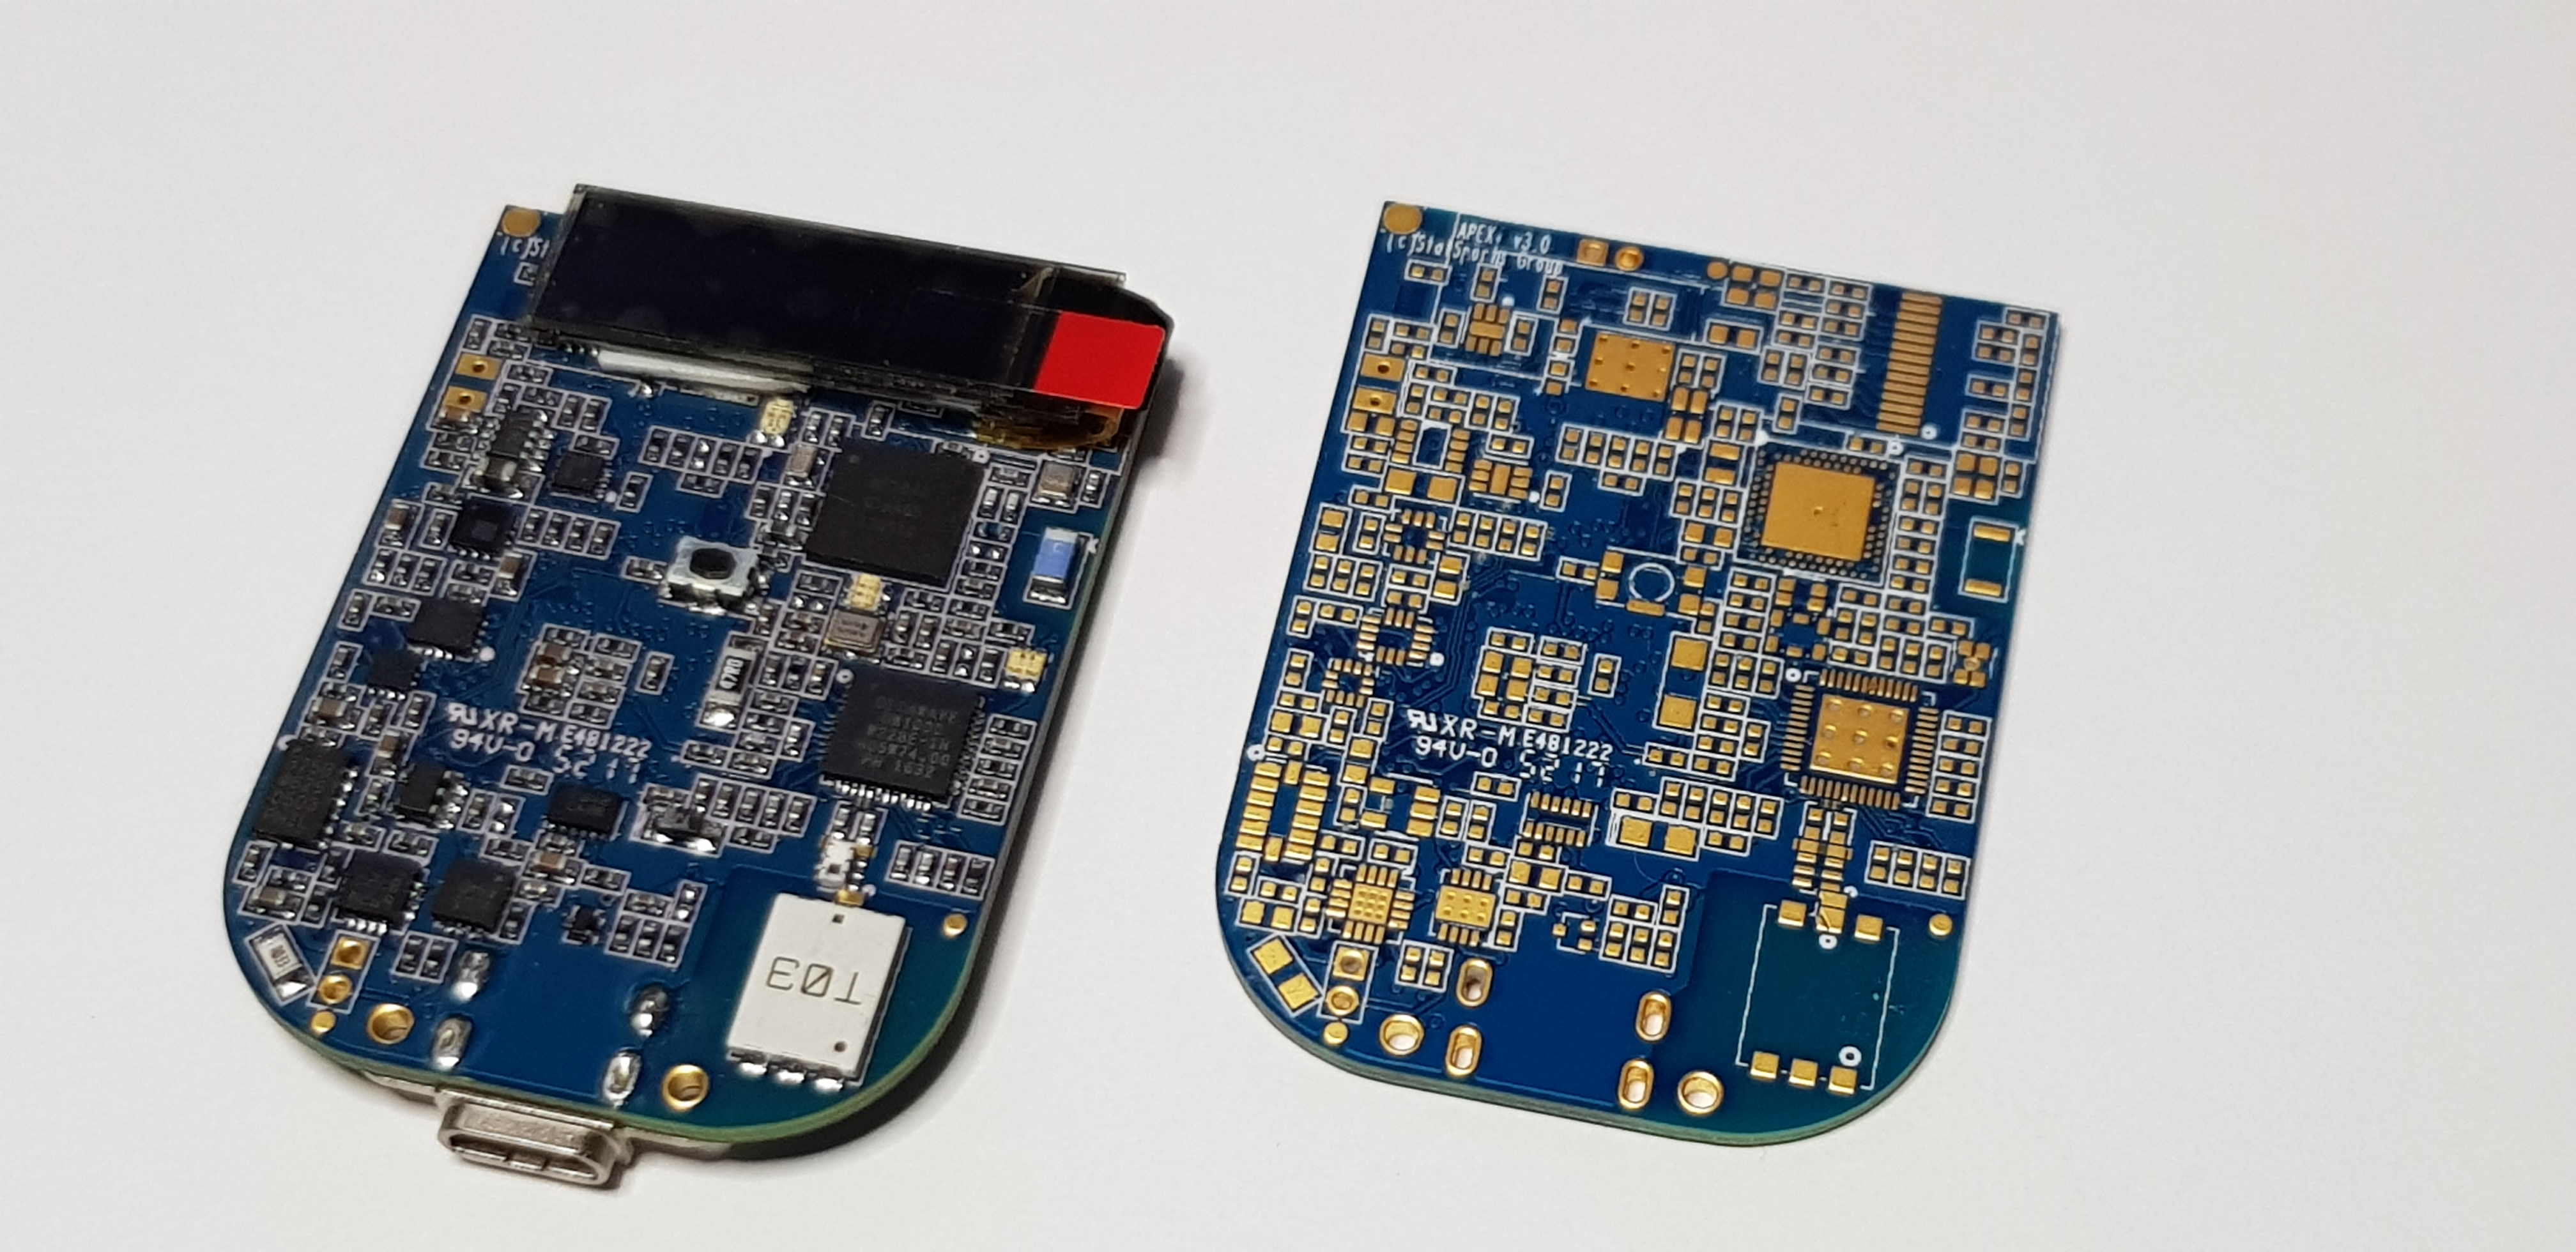 China Pcbpcb Prototypefast Prototype Pcbs Aluminum Custom To 16 Layers Pcb Circuit Board Manufacturer Sports Wearable Tracking Device Florin Stroiescu With Assembly Jose Alba Corona